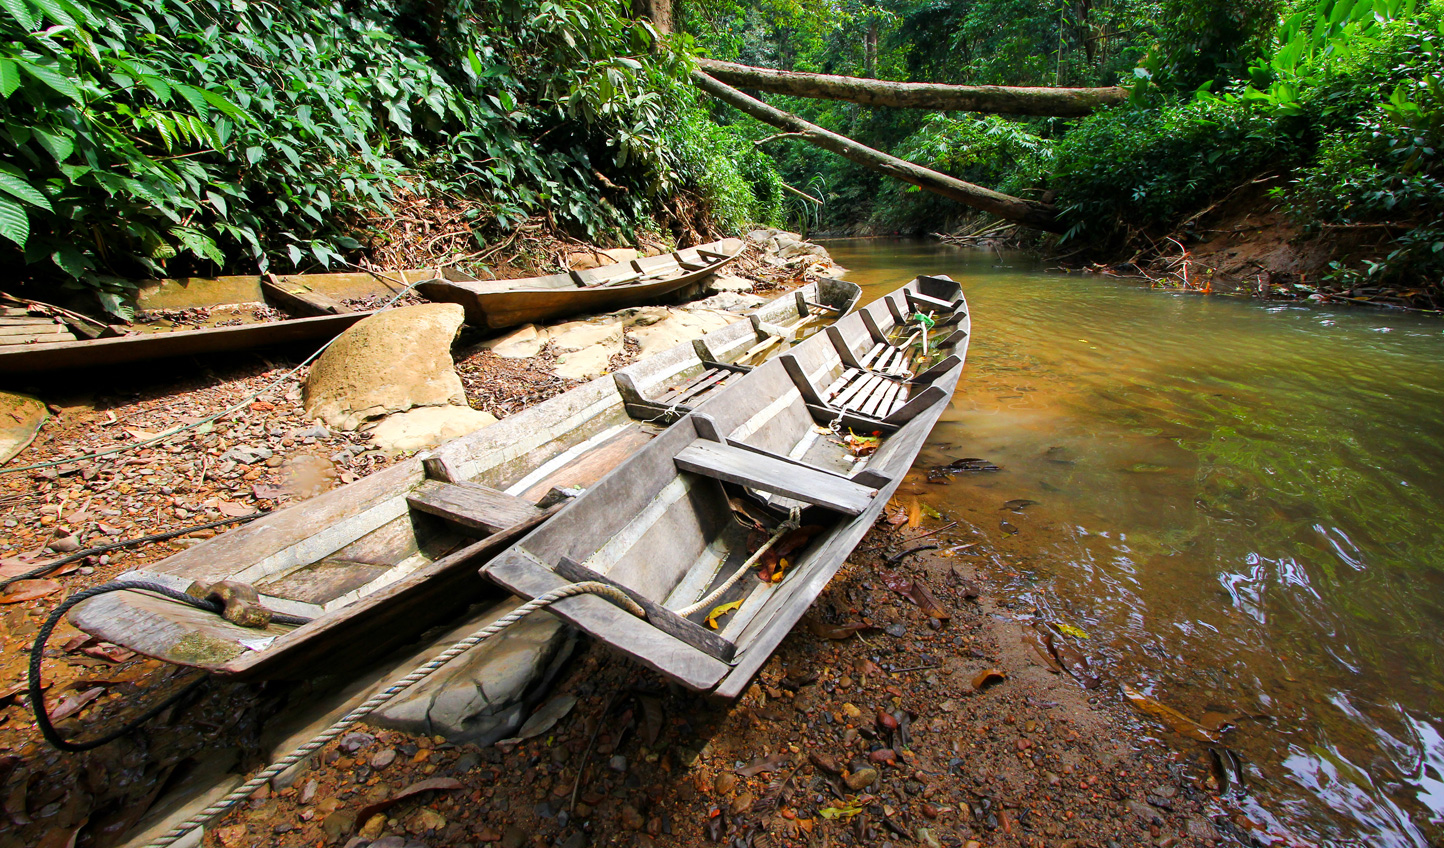 Explore the banks of the jungle from a traditional dugout canoe